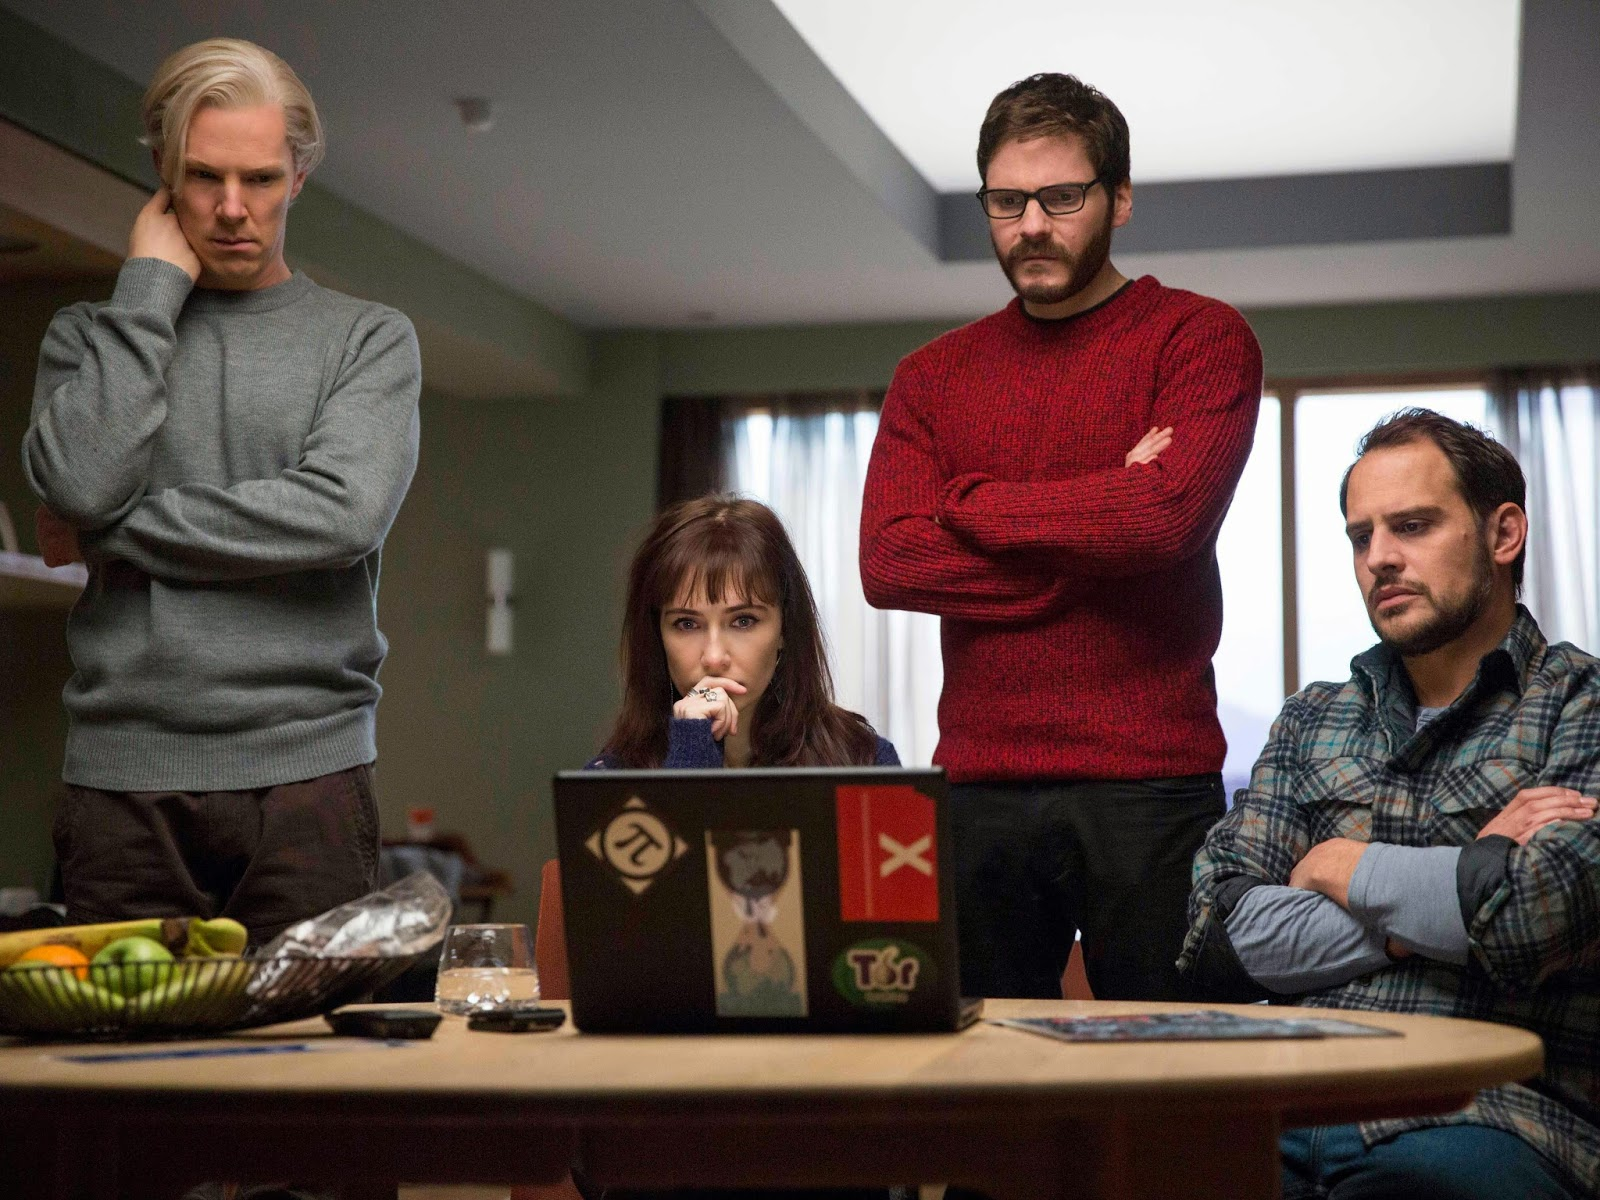 Movie review of The Fifth Estate starring Cumberbatch, Bruhl, Thewlis, Capaldi, Tucci and Linney.